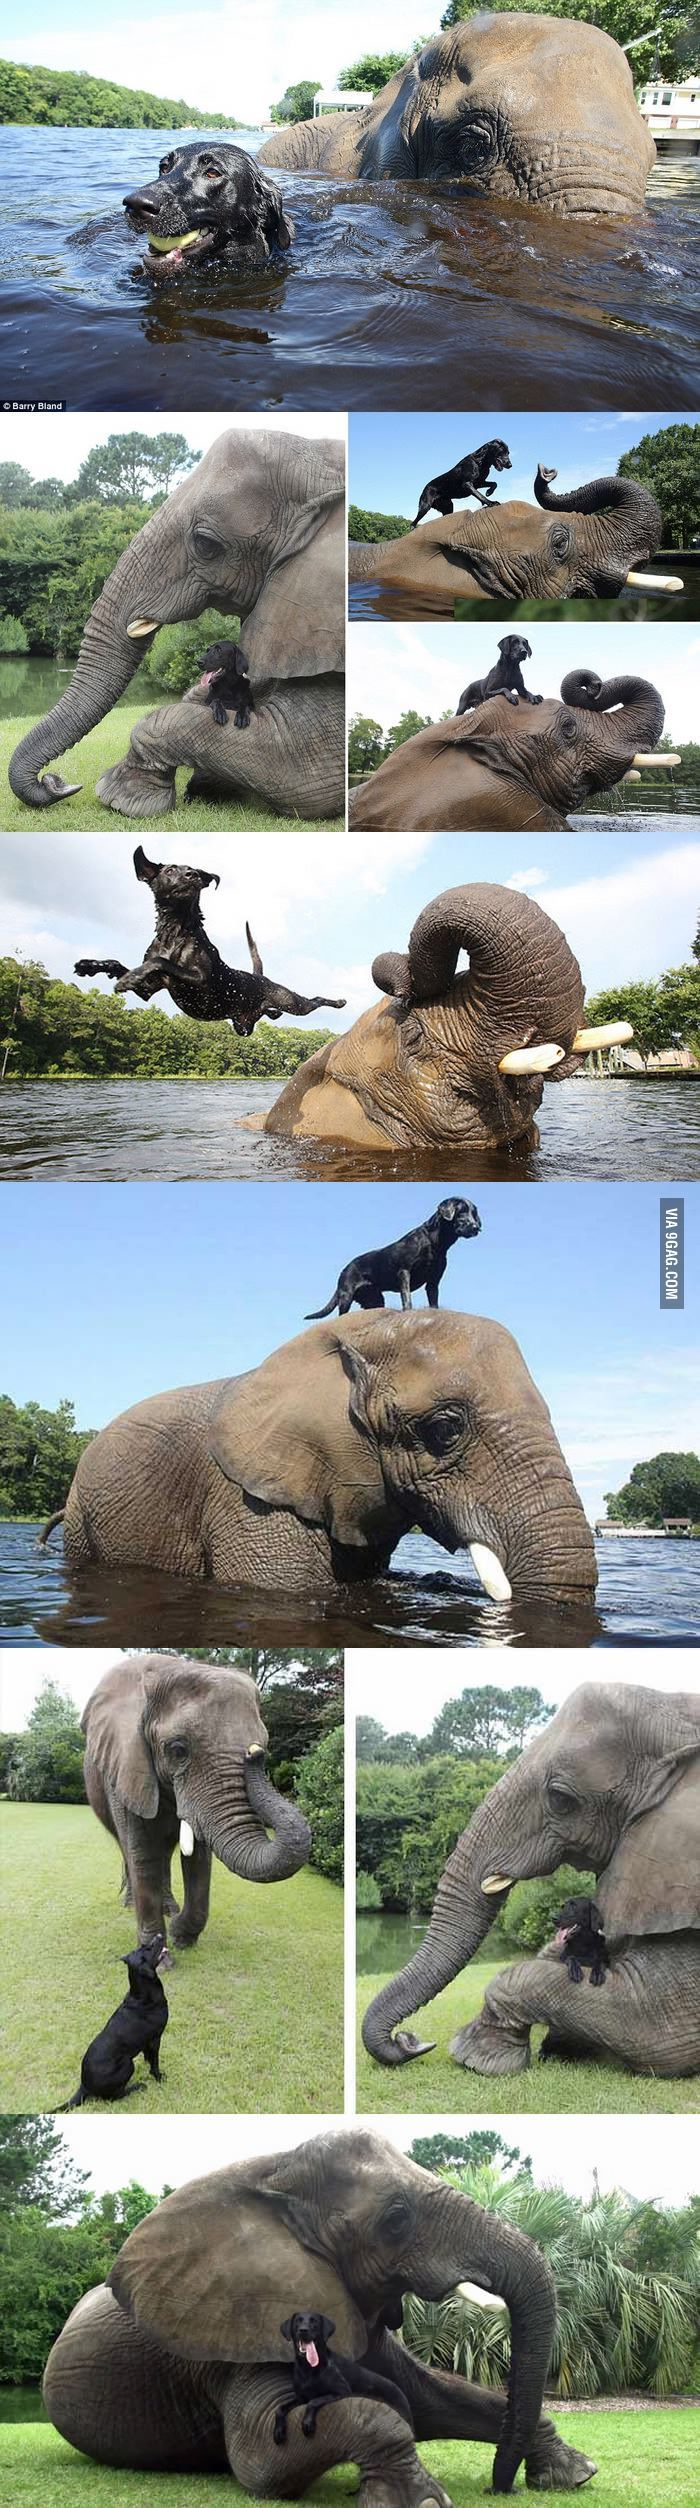 Bubbles And Bella, Elephant And Dog, Are Inseparable BFFs. They still need to be so careful!